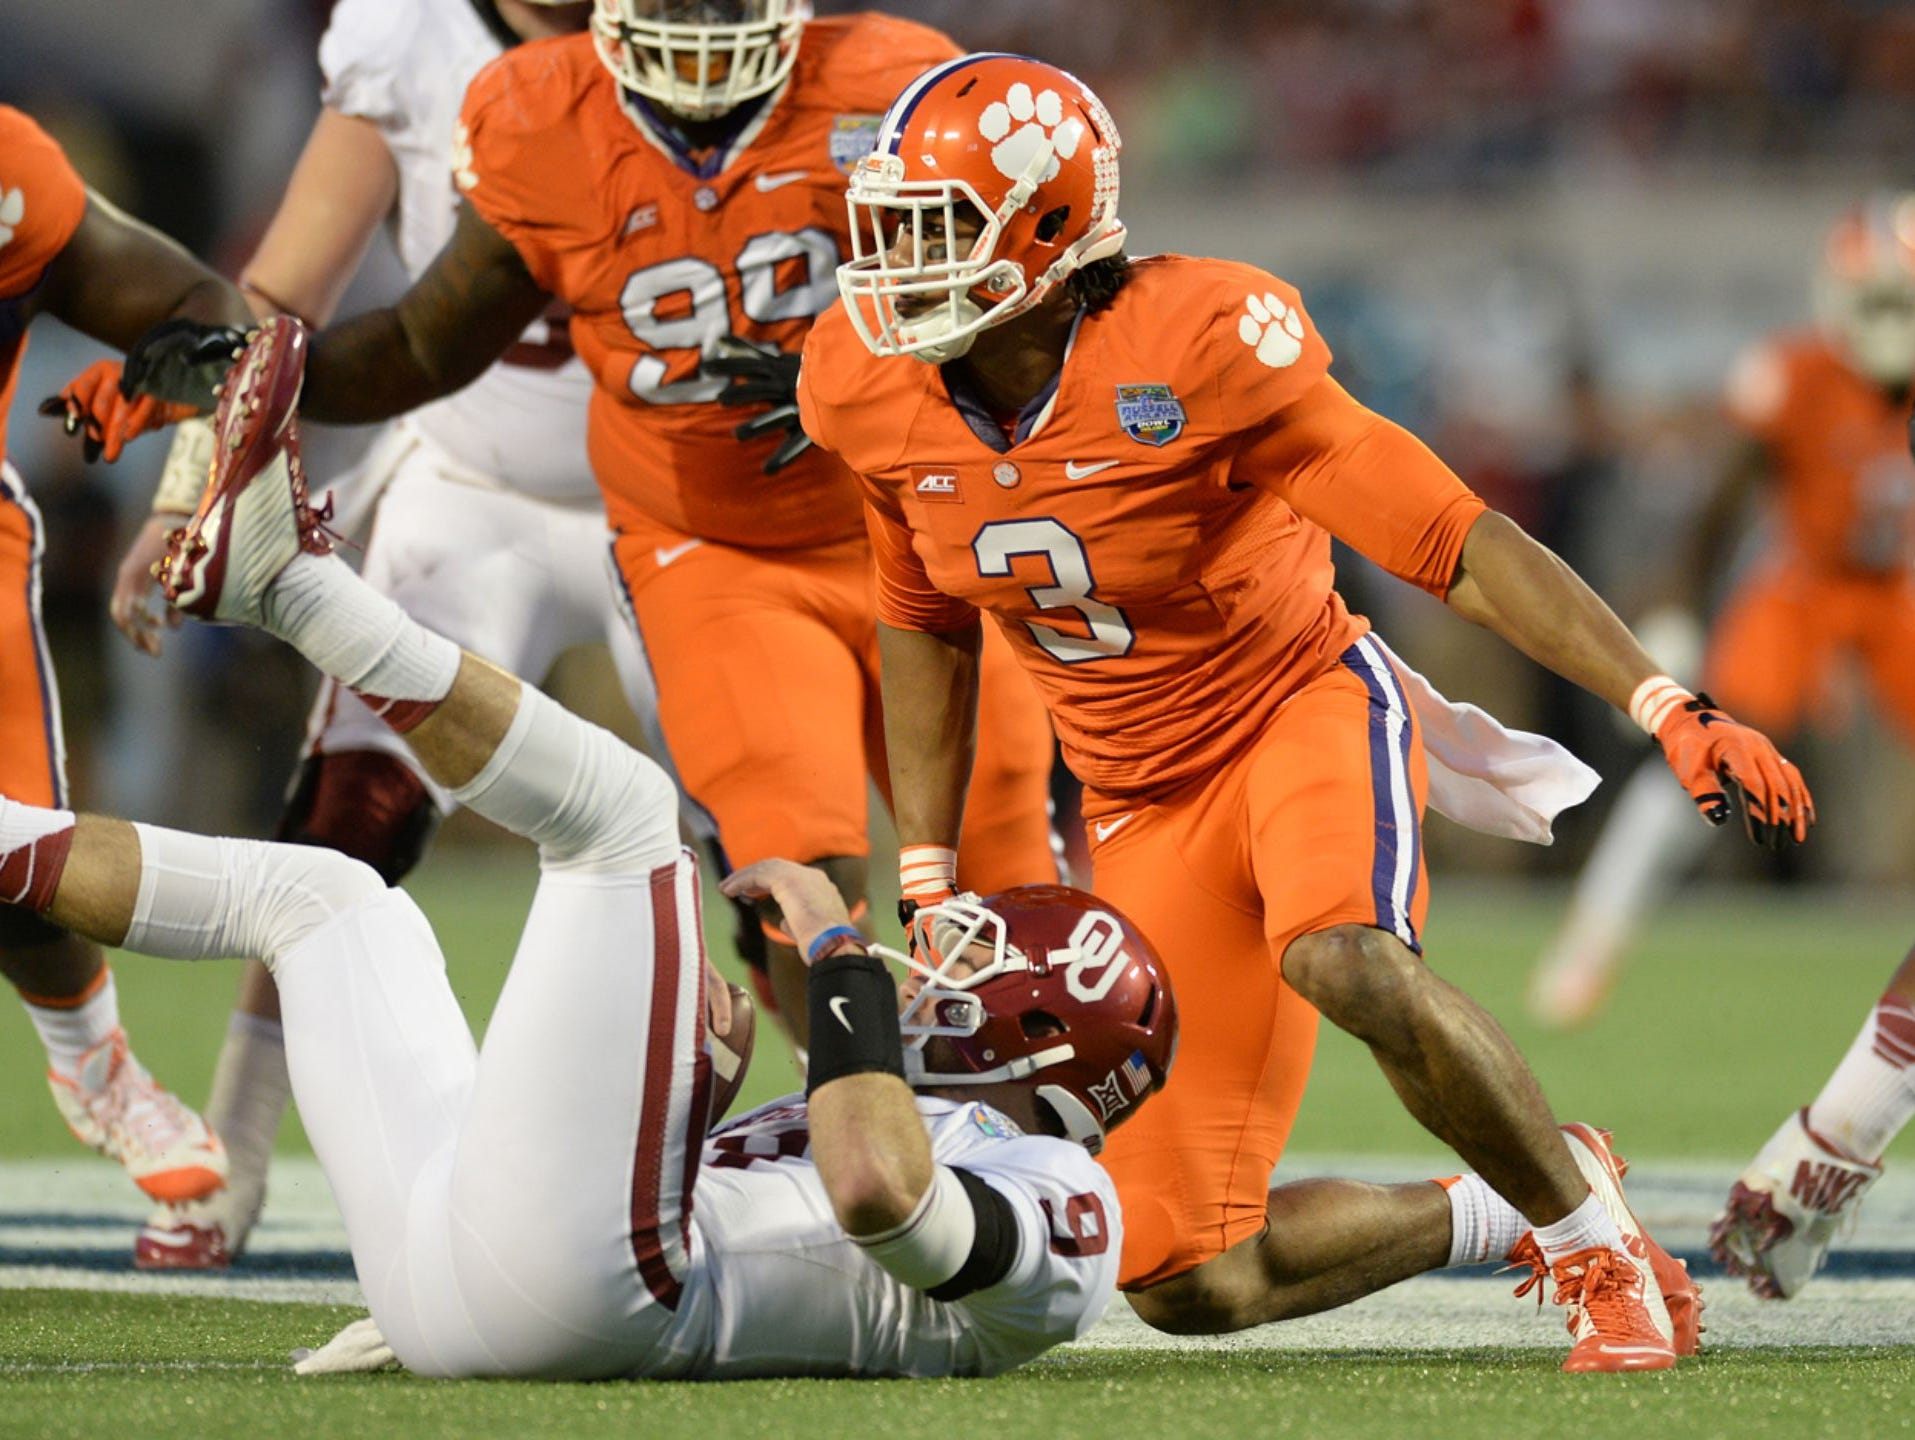 Clemson defensive end Vic Beasley is considered a first round pick in the 2015 NFL Draft.